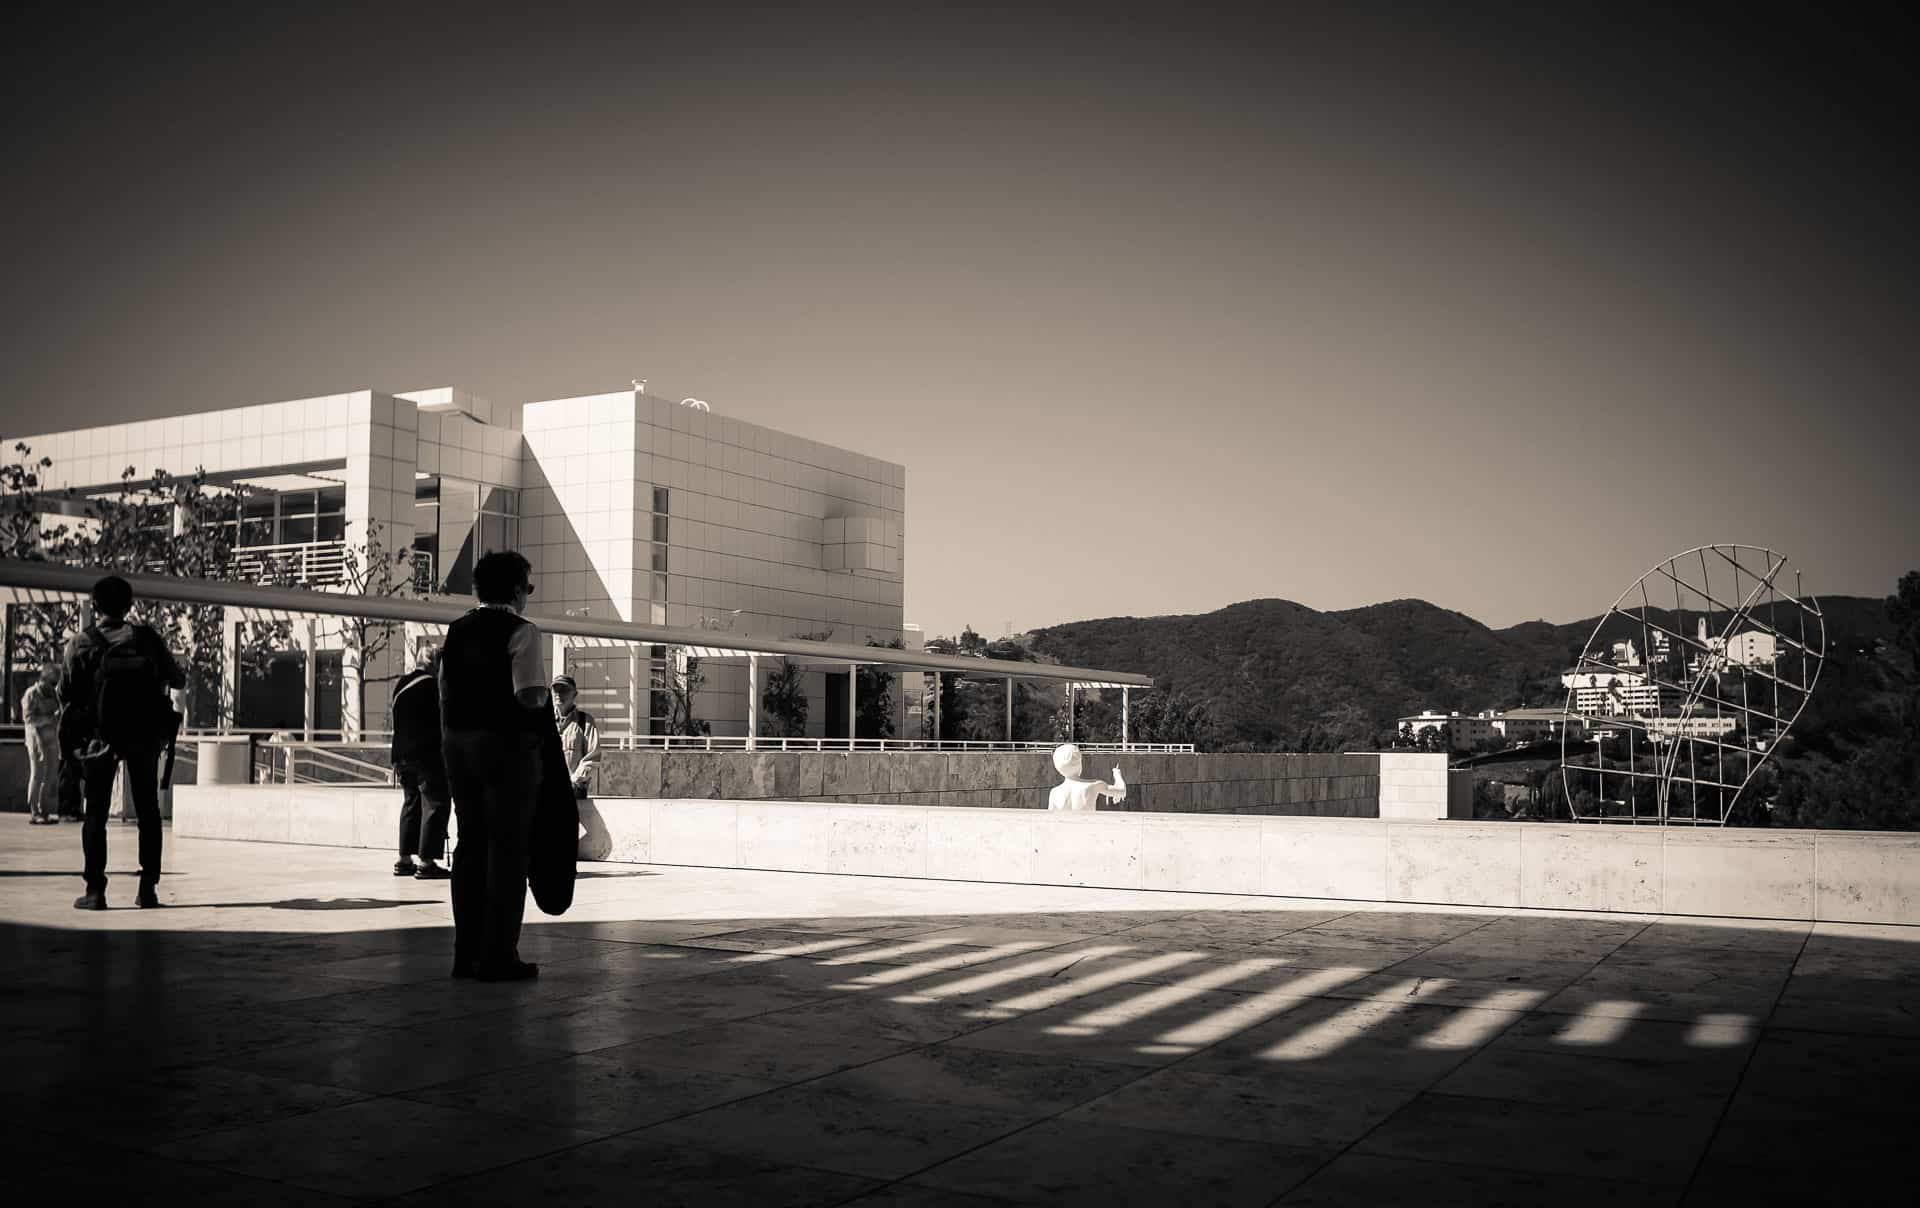 A report on a visit to the getty museum